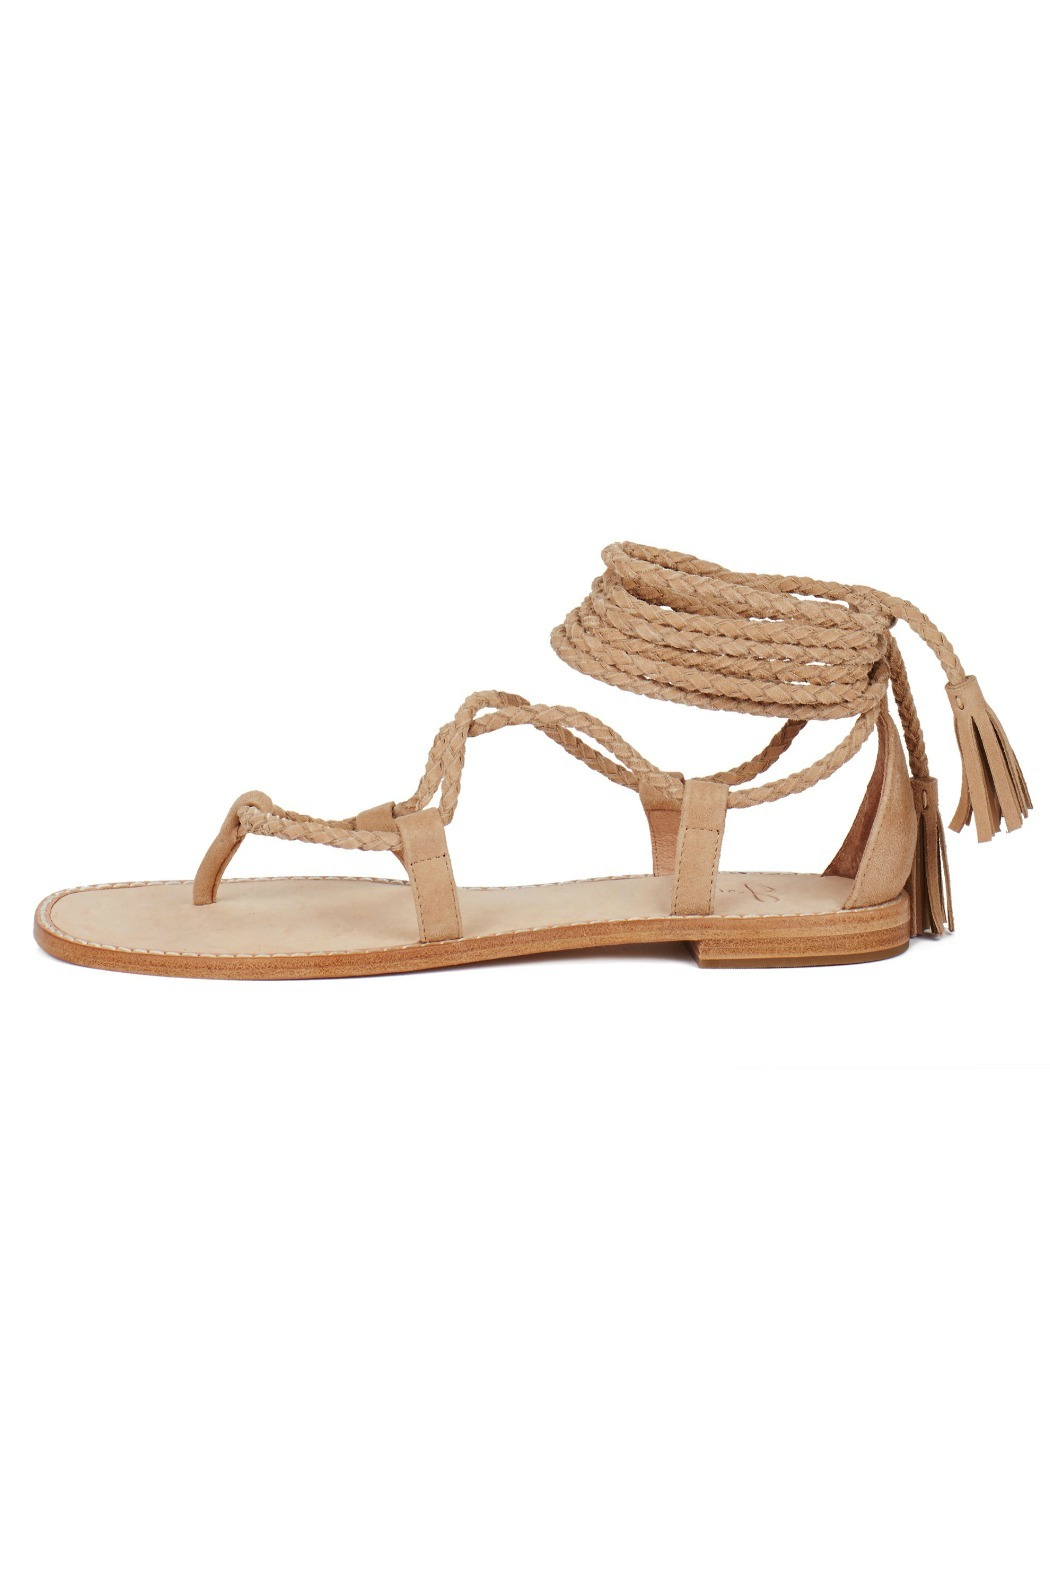 Joie Bailee Sandals - Main Image